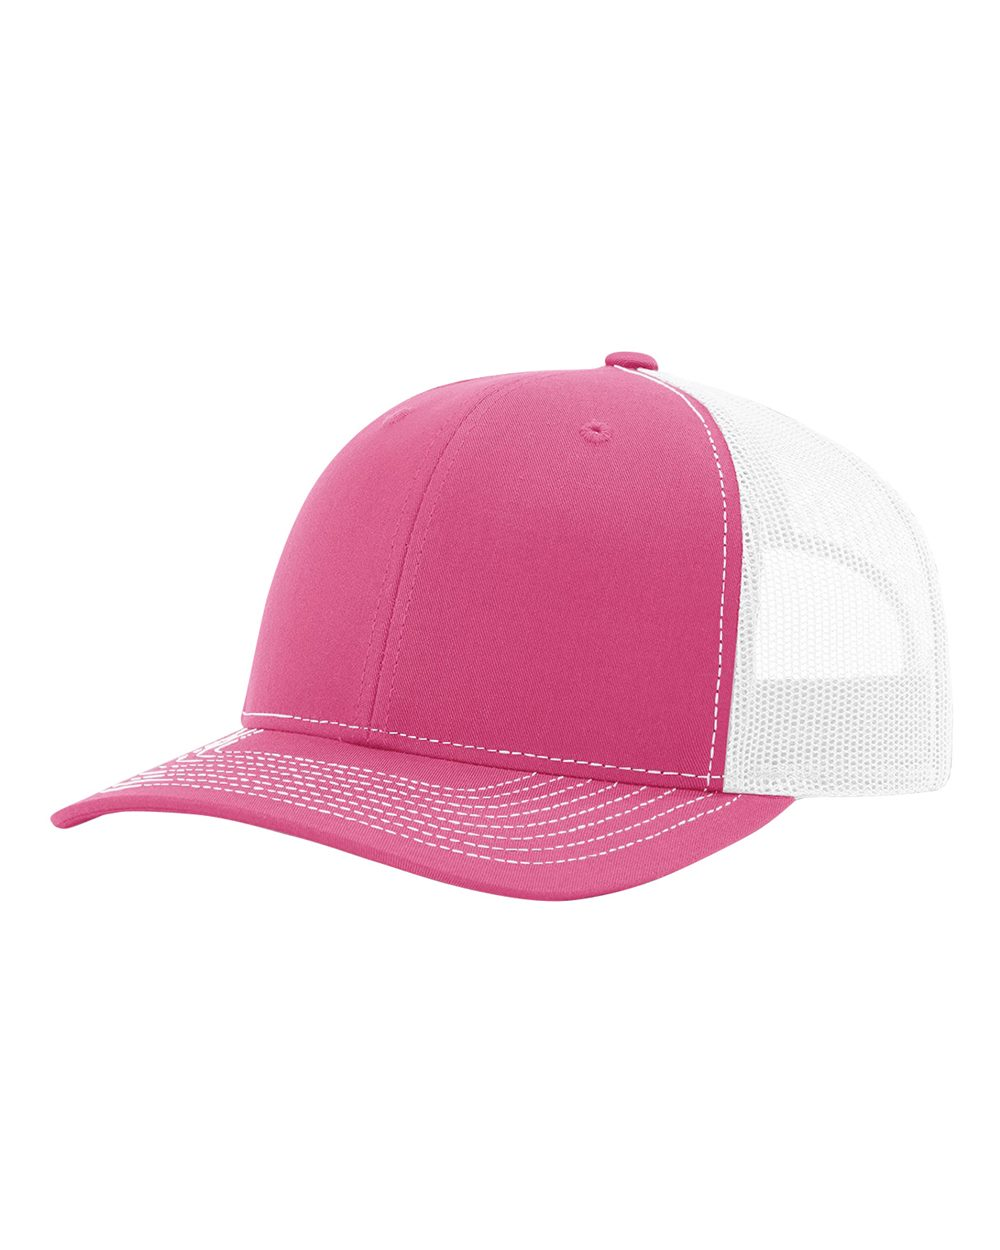 click to view Hot Pink/ White